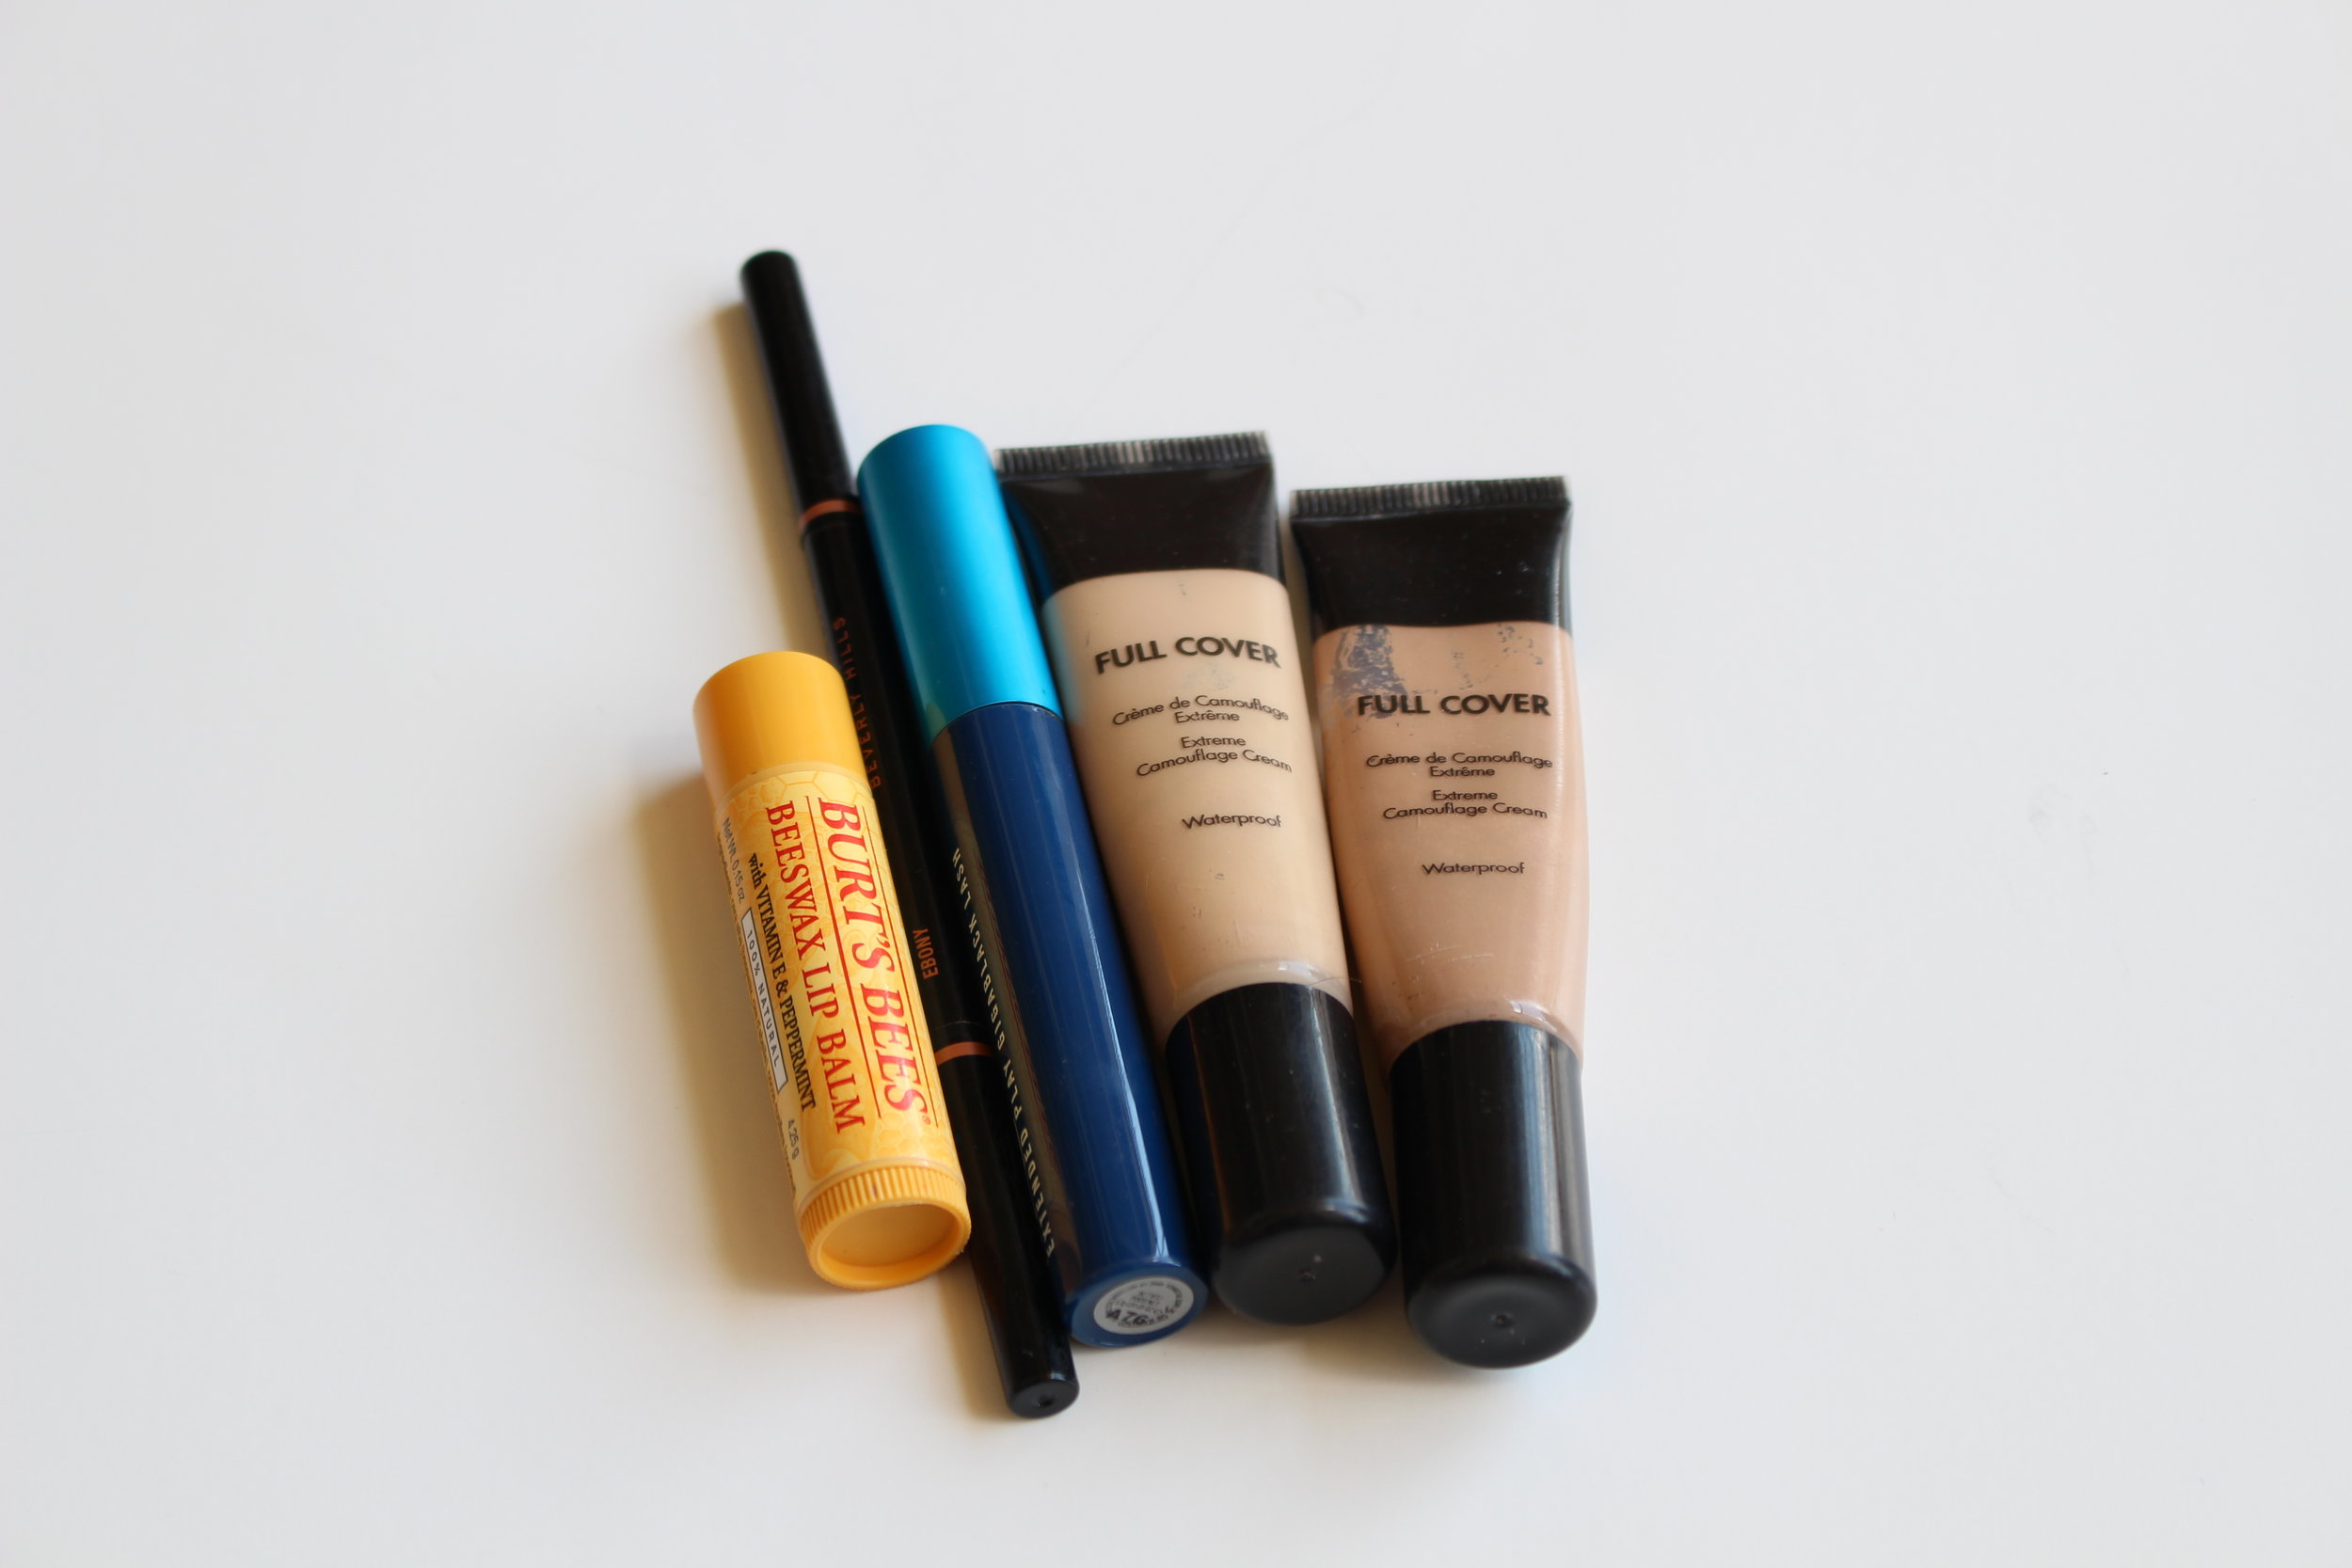 Well hello hello. Left to right: Burt's Bees Lip Balm, Anastasia Beverley Hills Brow Whiz, MAC Extended Play Mascara, Makeup Forever Full Cover Concealers